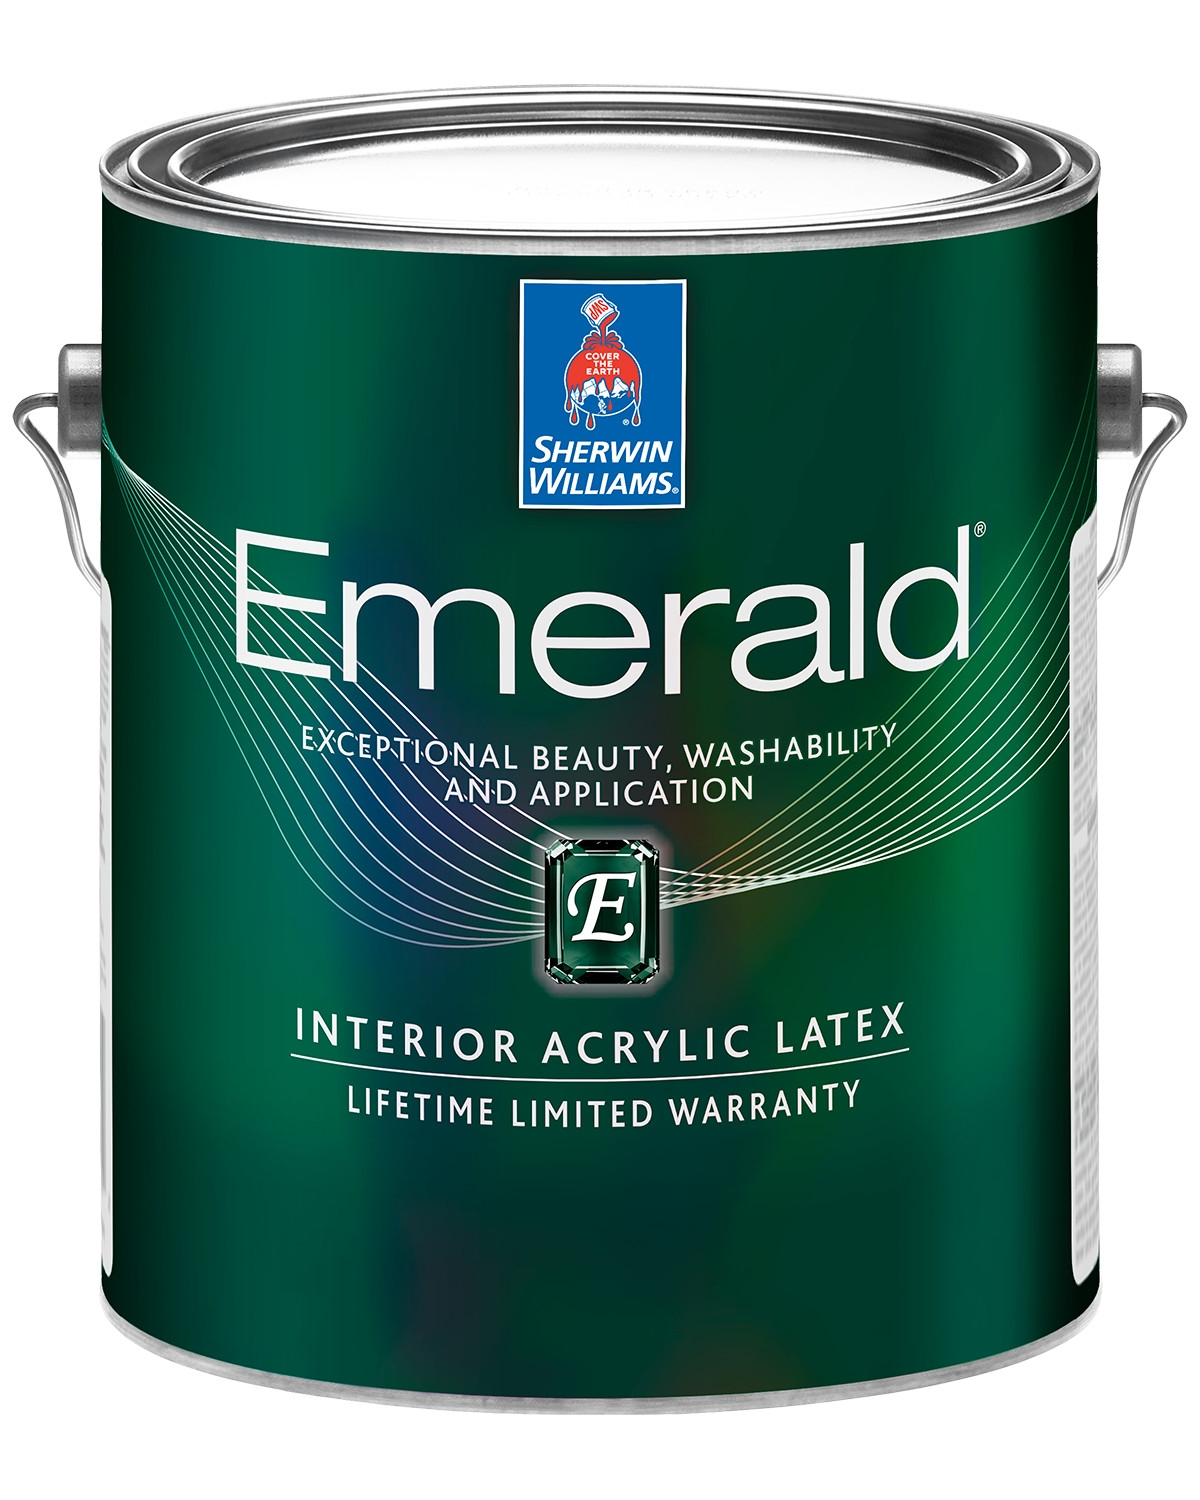 Sherwin Williams Duration Interior Paint Review ...